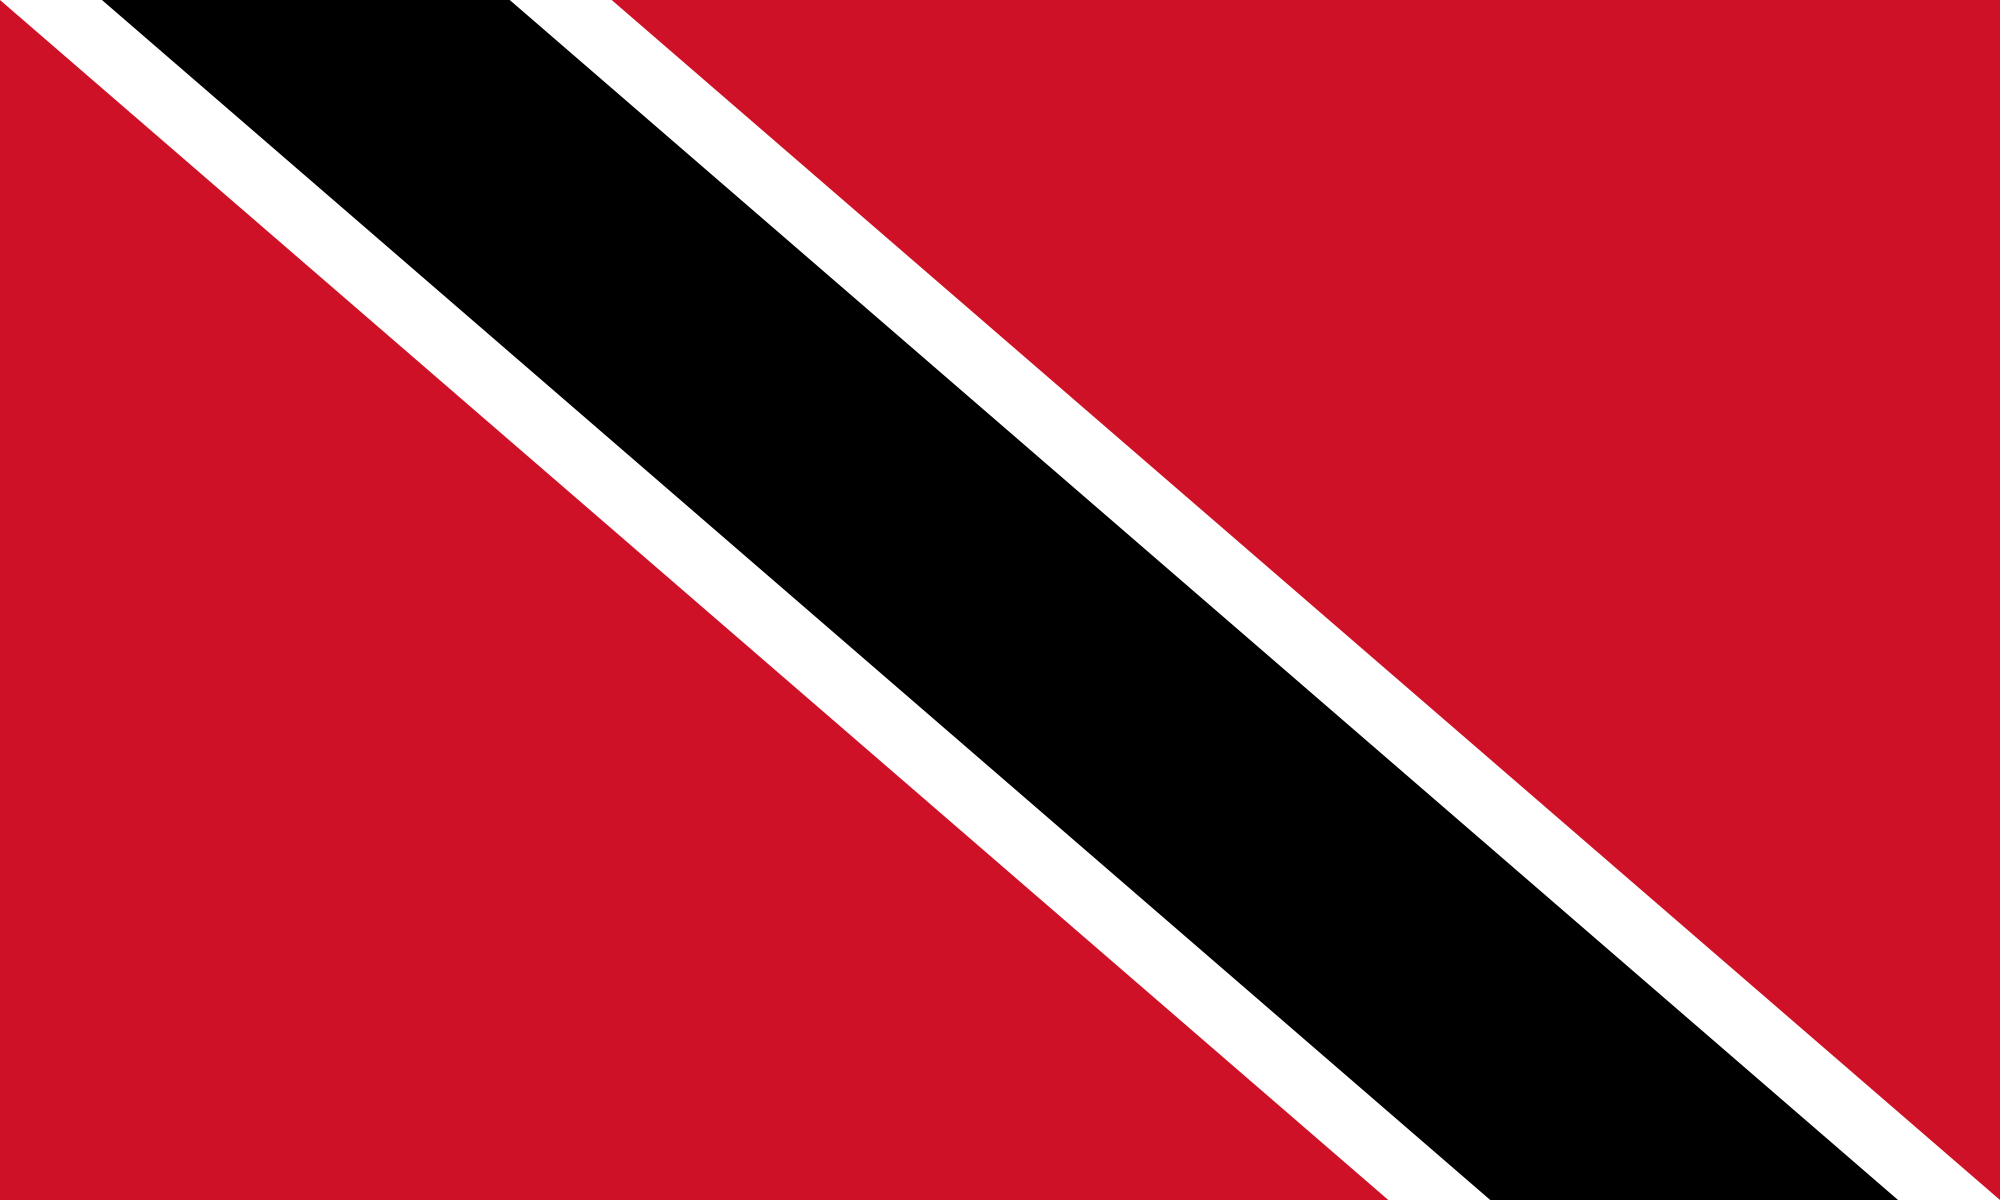 Clipart svg trinidad flag picture black and white library 17 best ideas about Trinidad And Tobago Flag on Pinterest ... picture black and white library